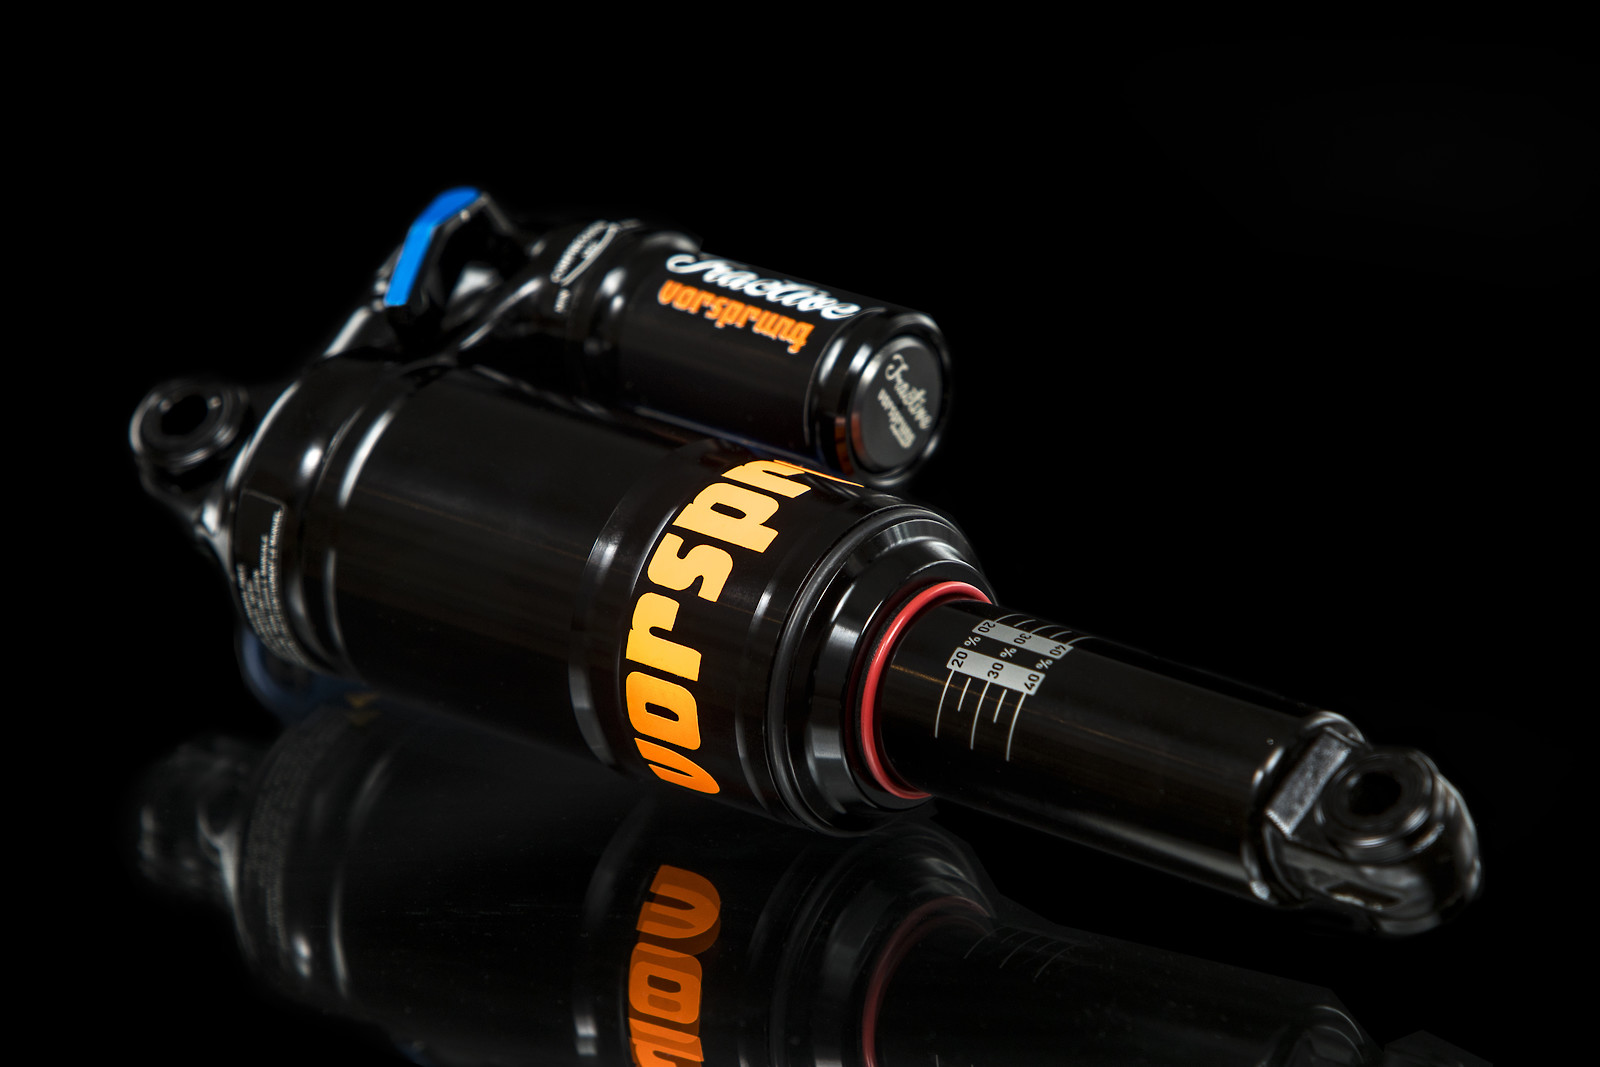 Tractive Valve Tuning System - Vorsprung - Mountain Biking Pictures - Vital MTB